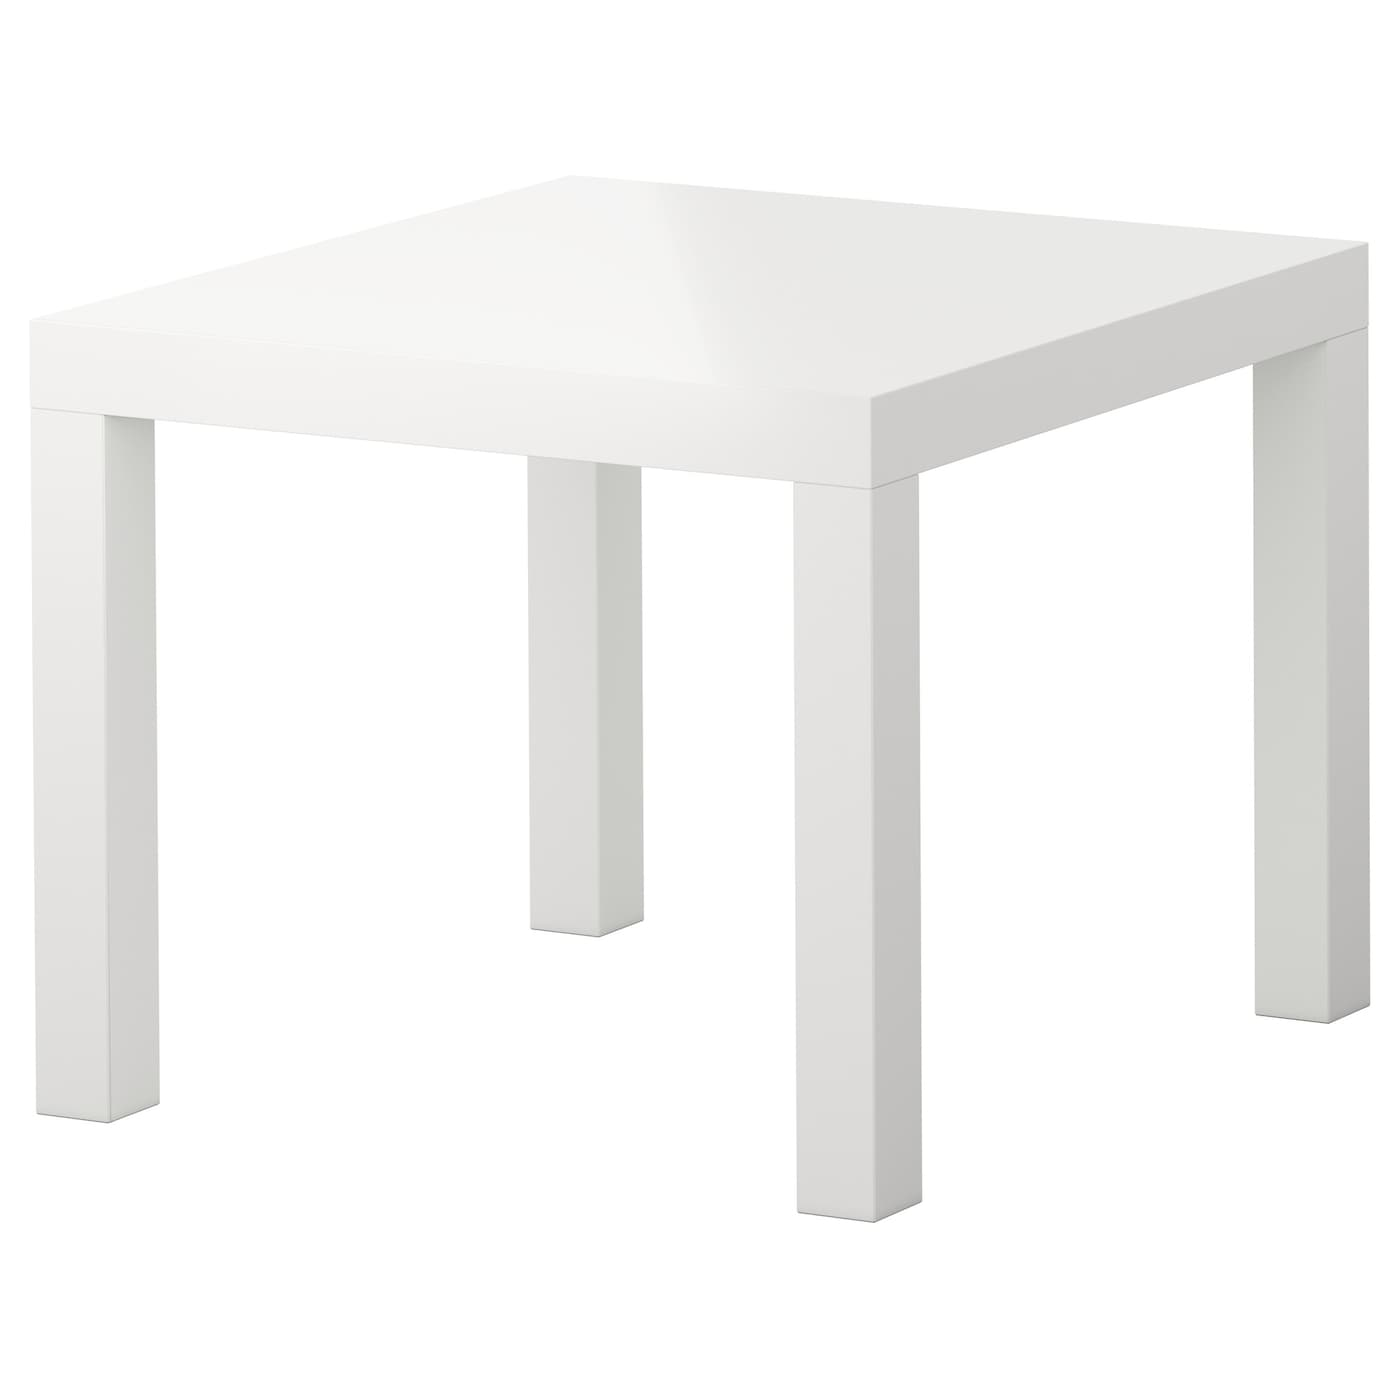 Occasional Tables - Tray, Storage & Window Tables